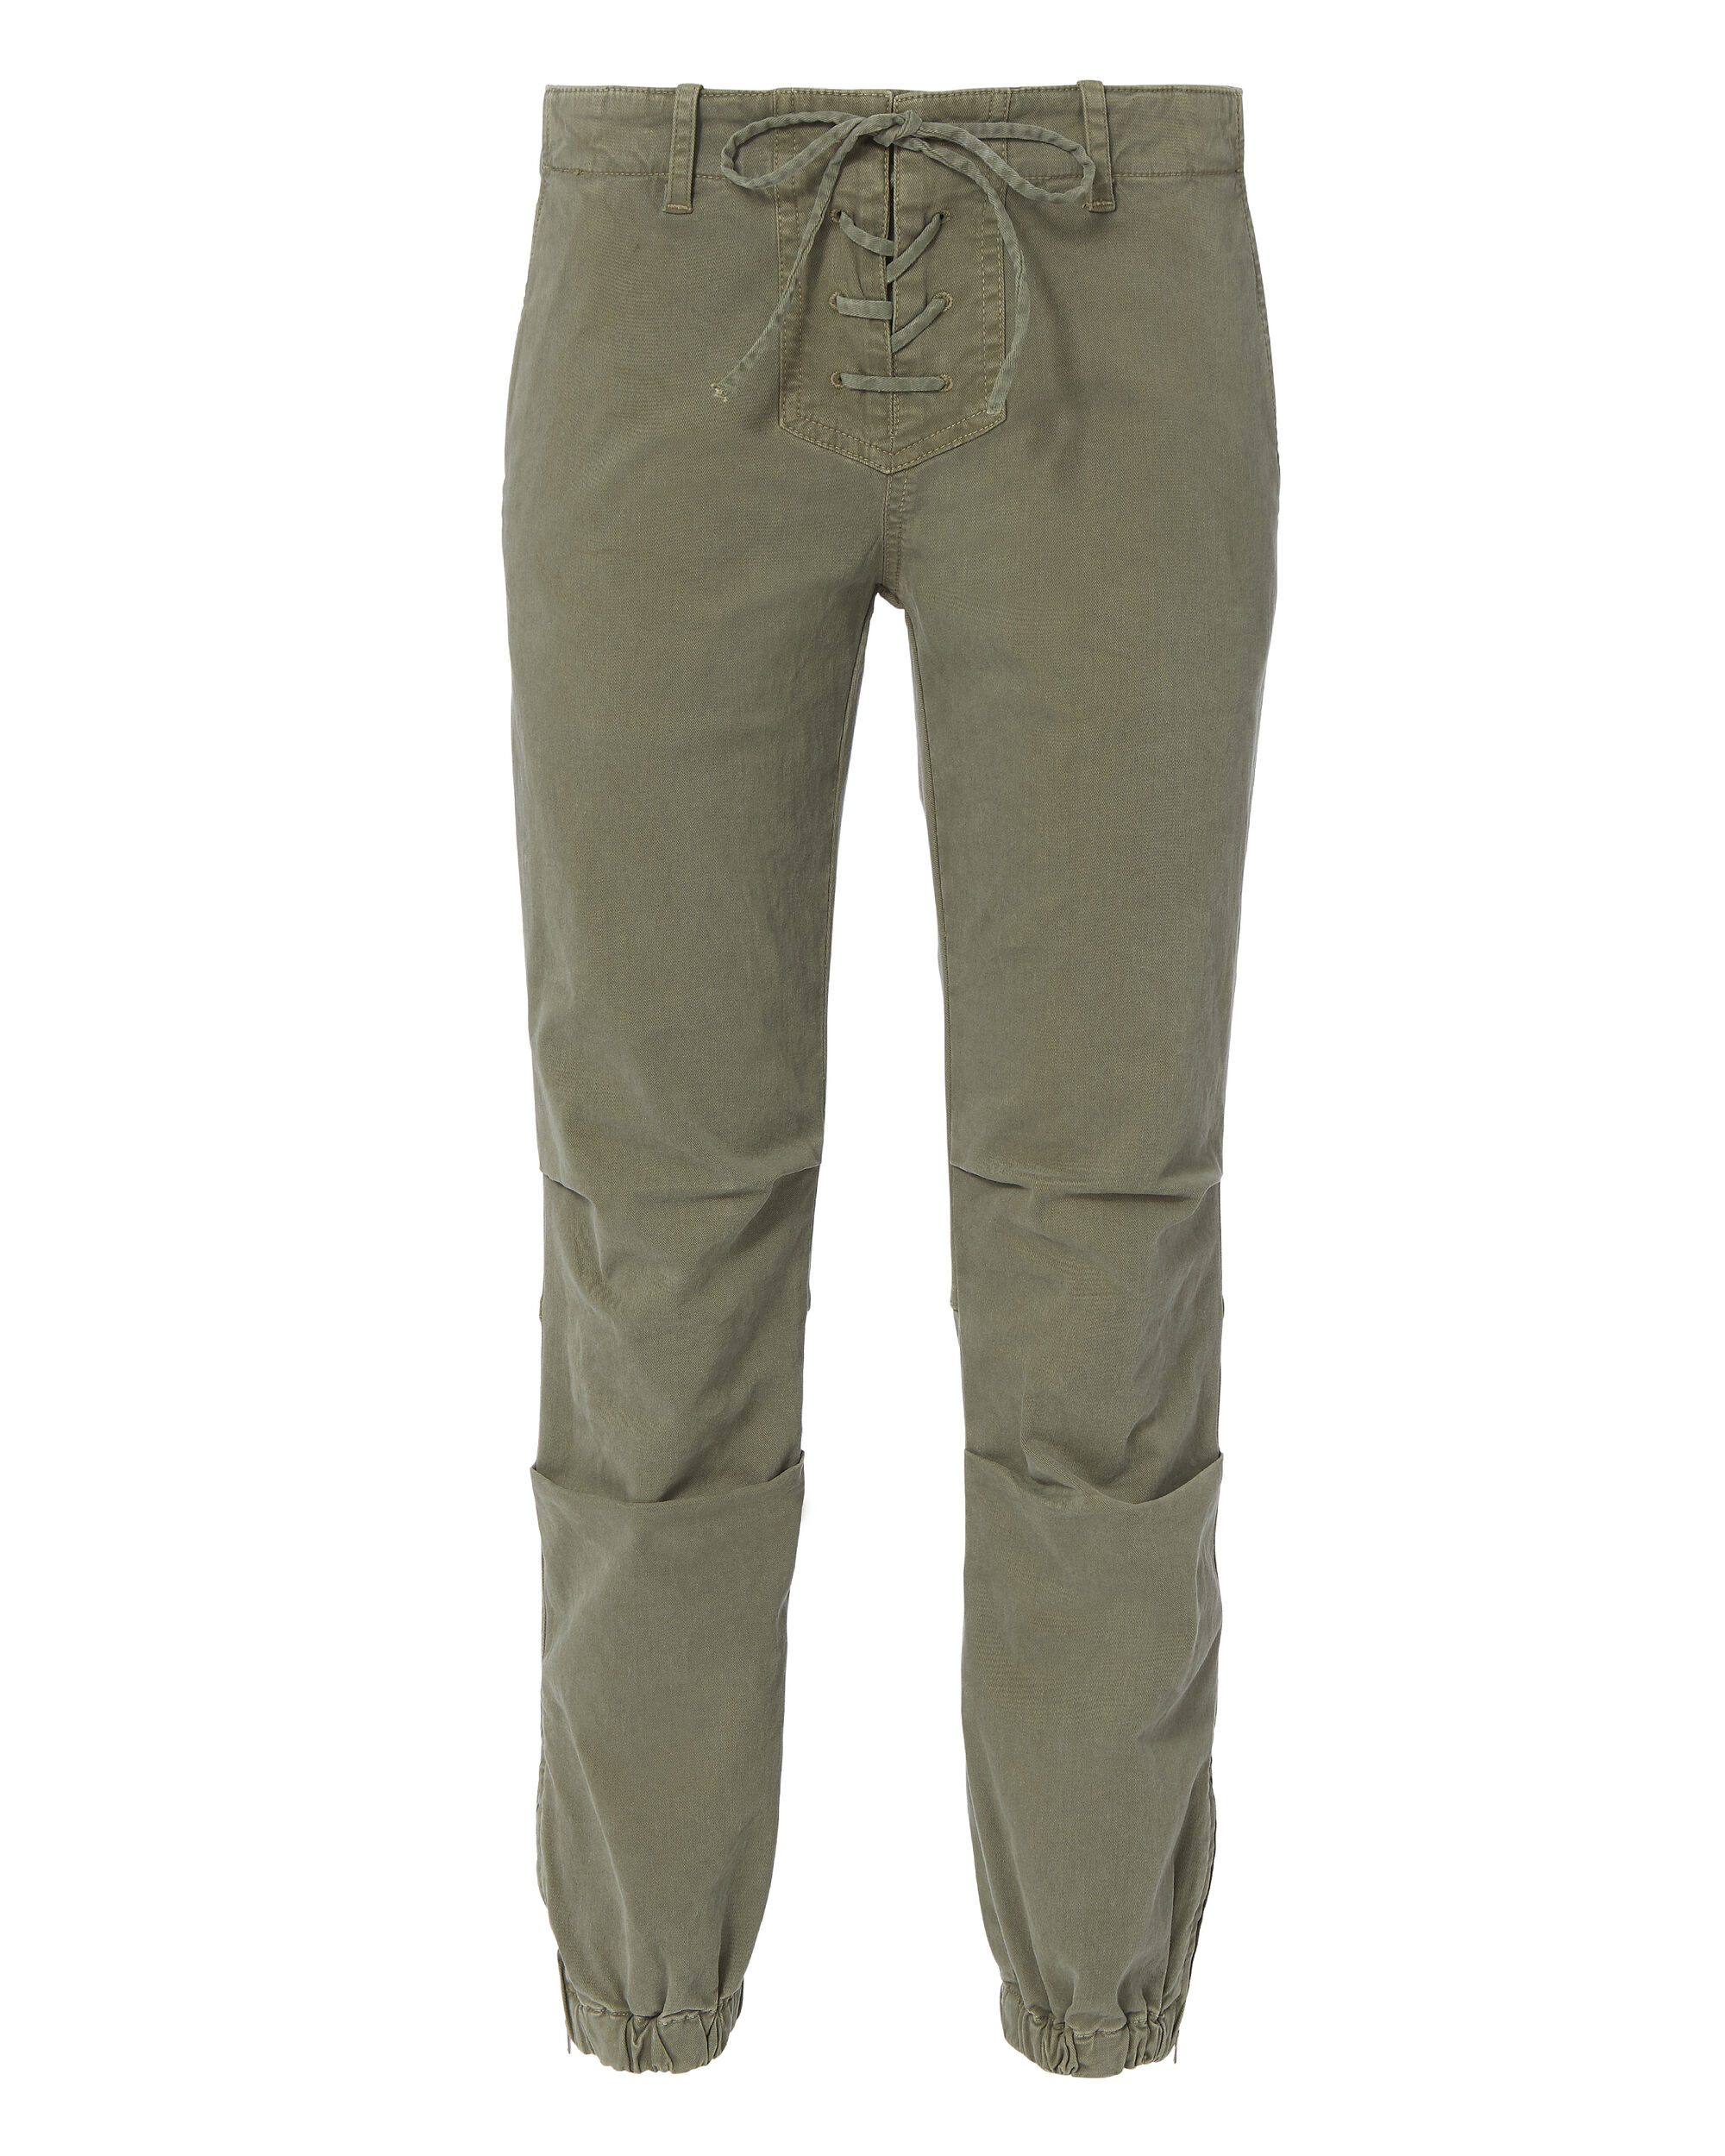 Lace-Up Crop Military Pants, OLIVE/ARMY, hi-res